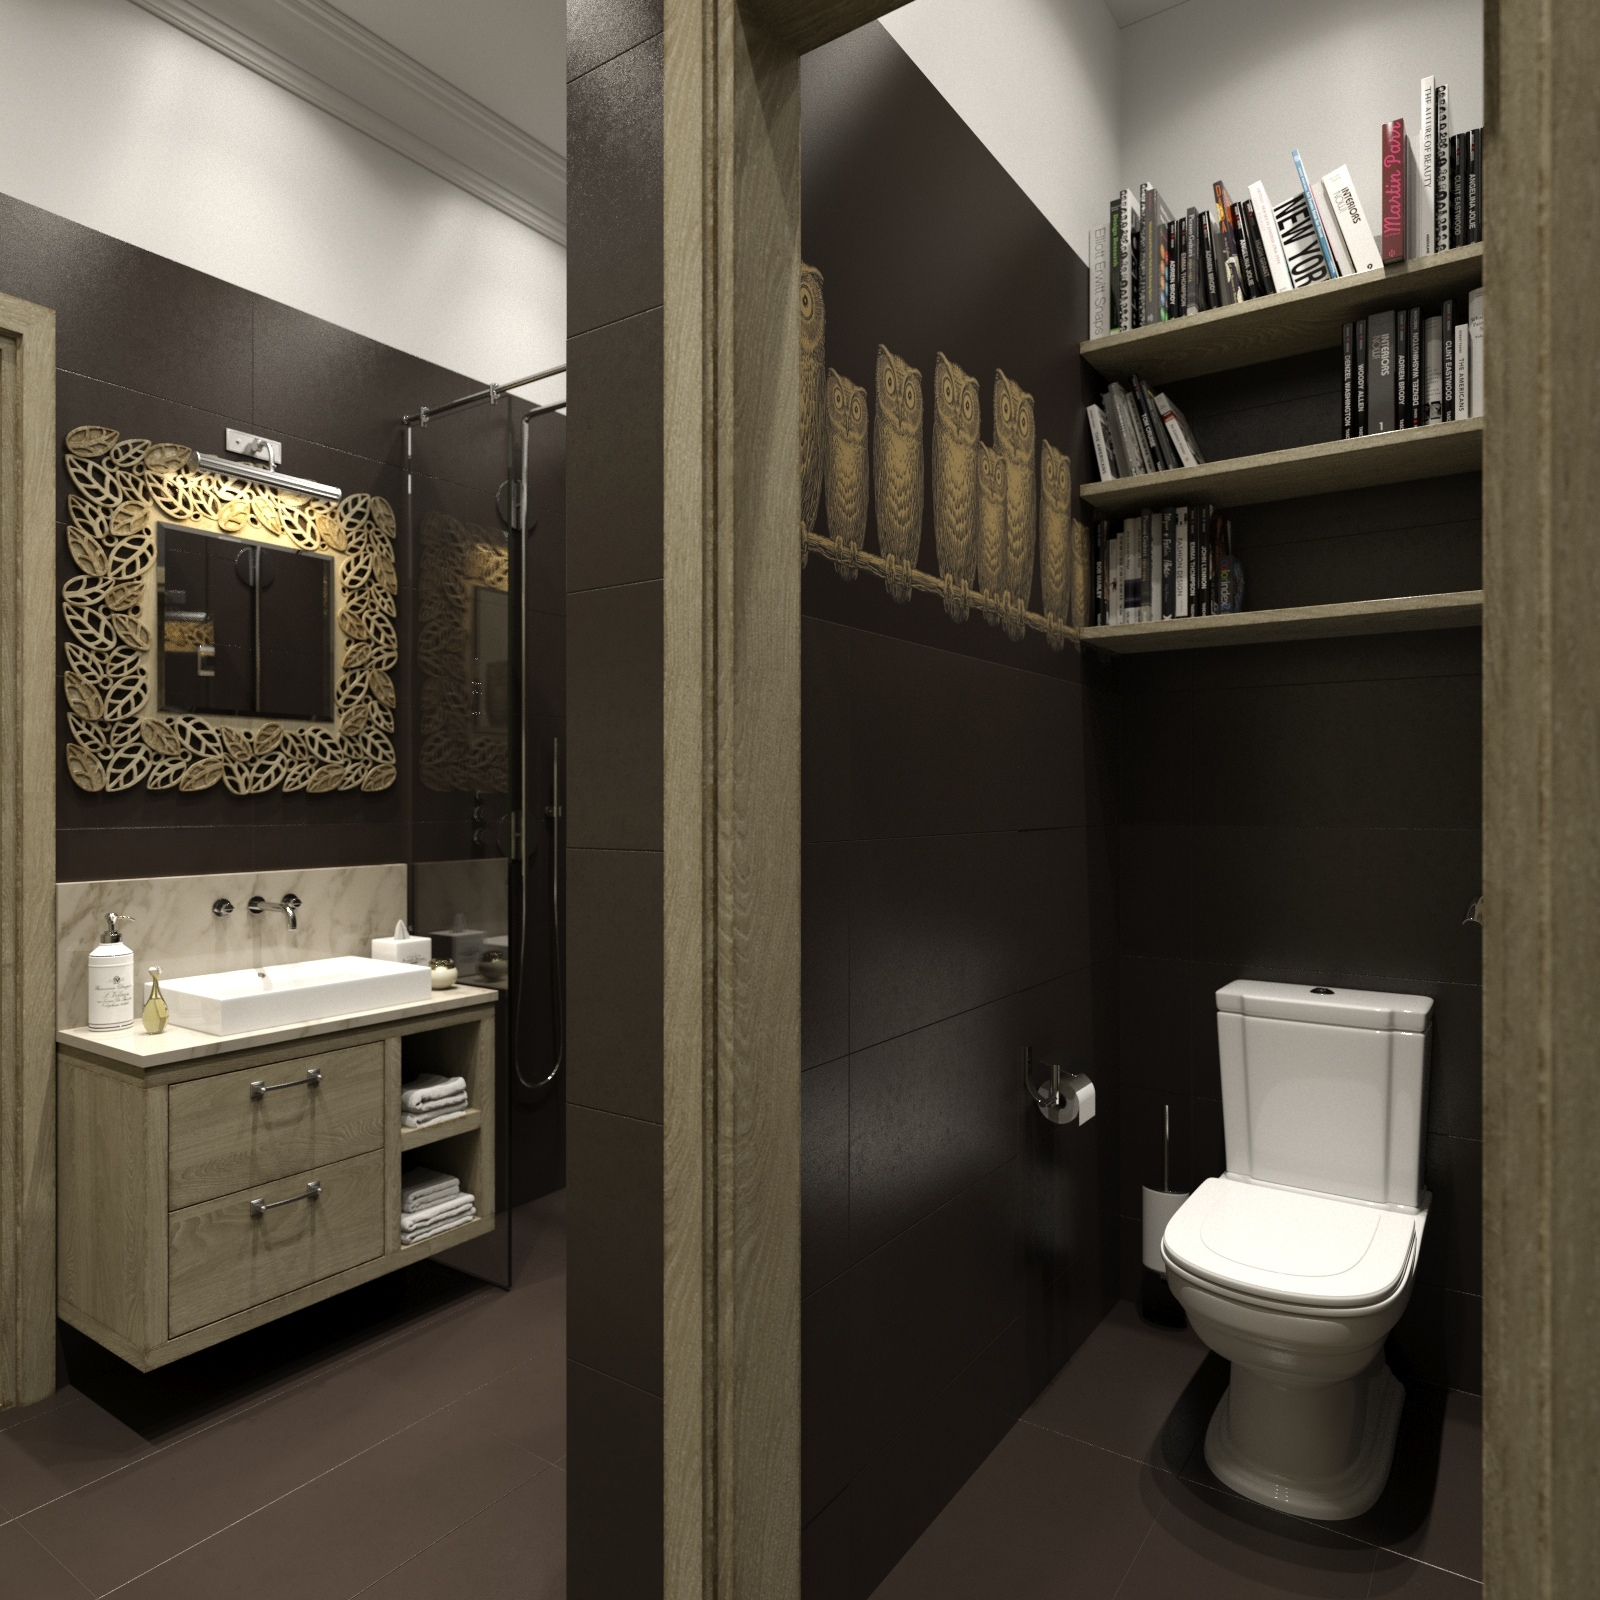 Homey feeling room designs for Toilet room decor